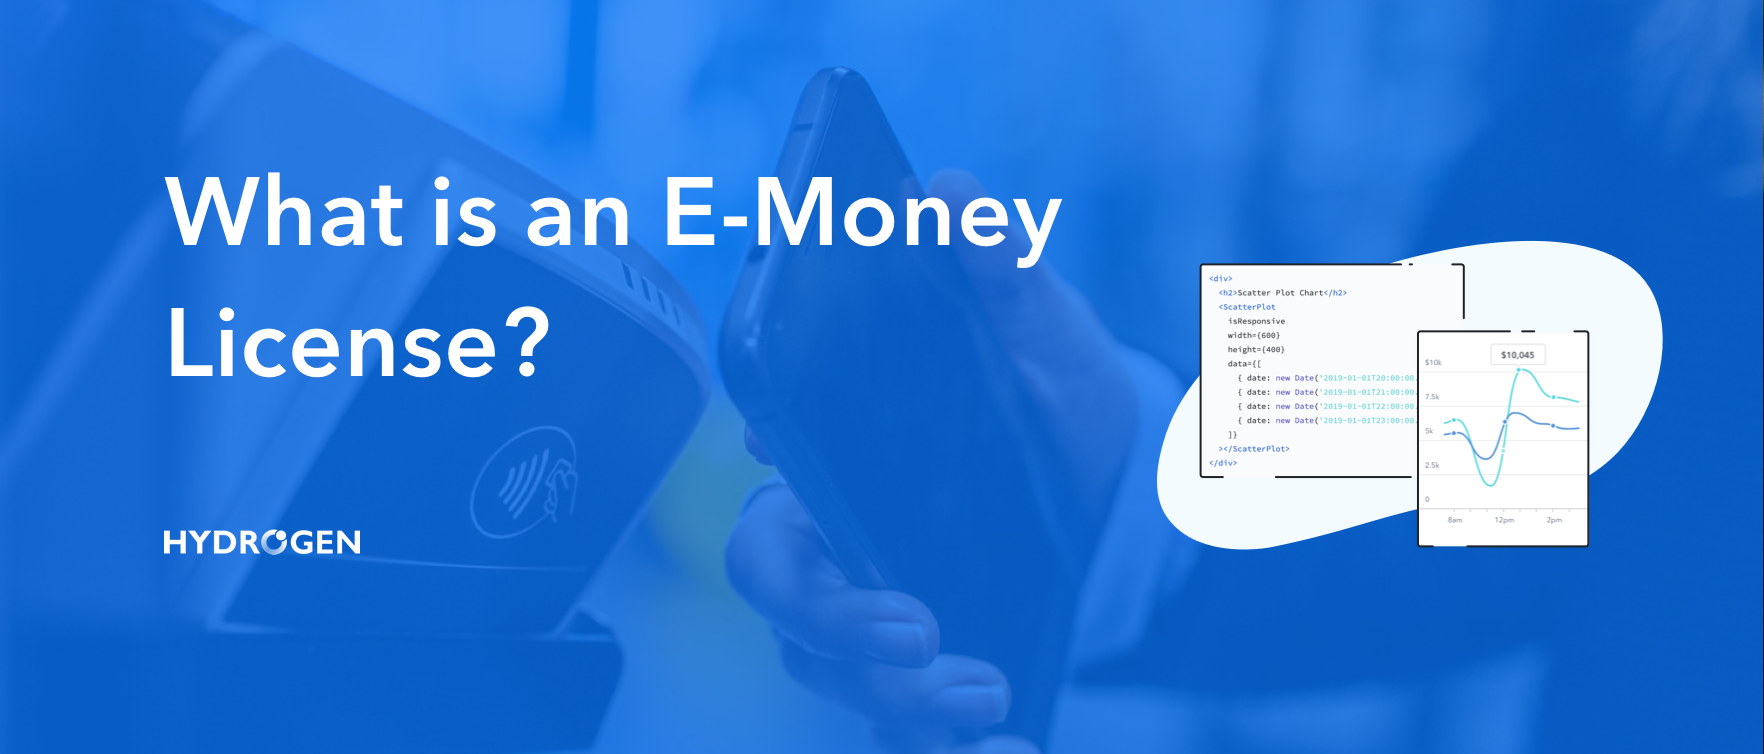 What is an E-Money License?